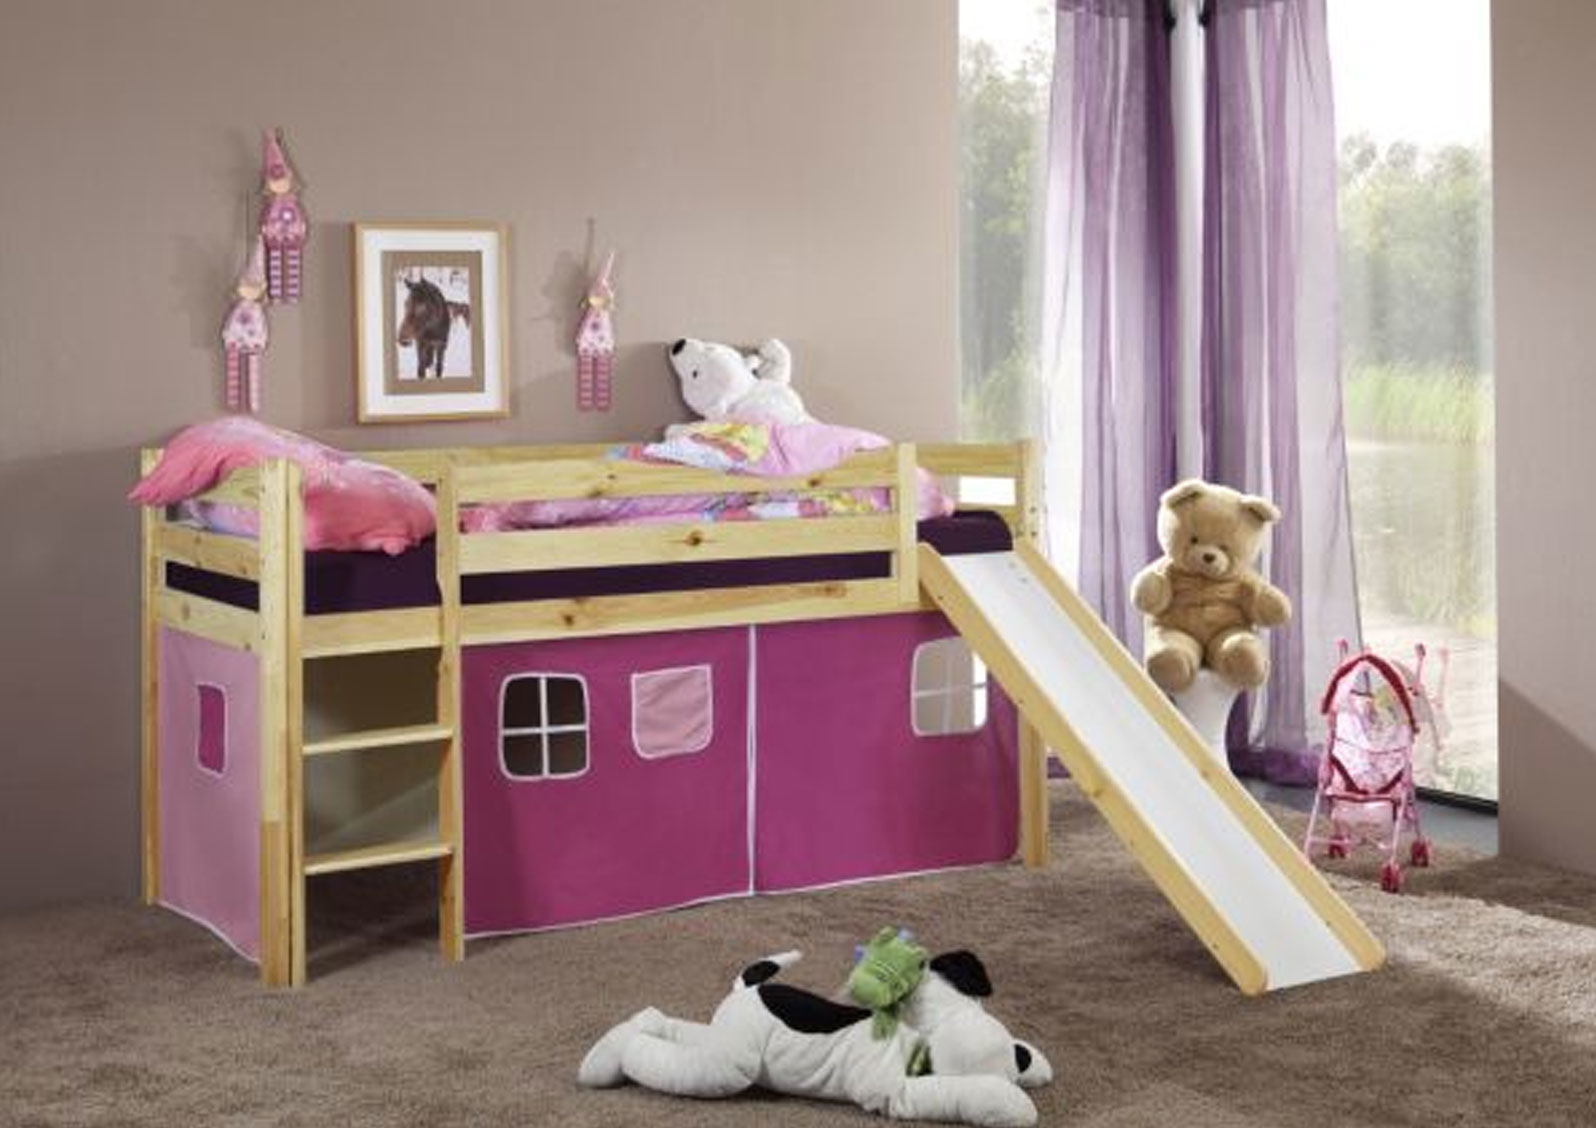 gnstige hochbetten mit rutsche latest hochbetten x cm spielbett mit rutsche und turm kinderbett. Black Bedroom Furniture Sets. Home Design Ideas